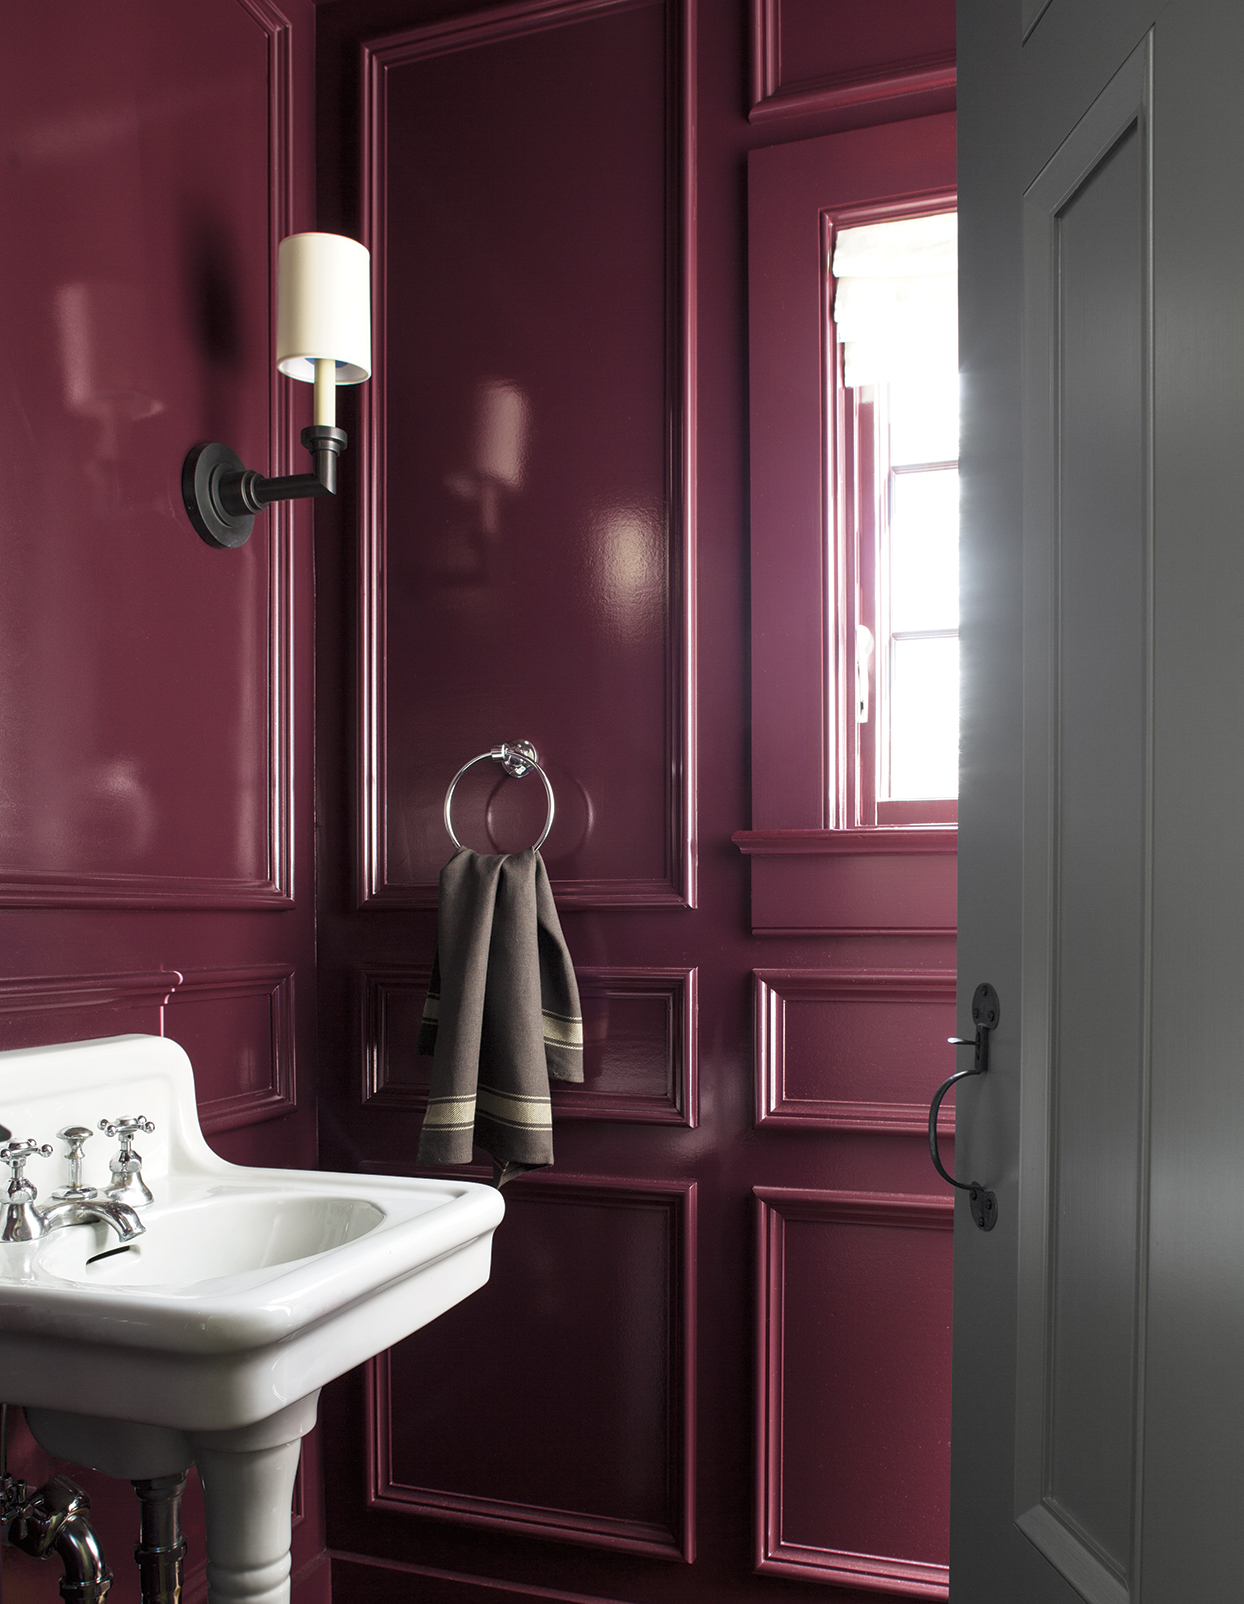 merlot colored bathroom with white and gray accents